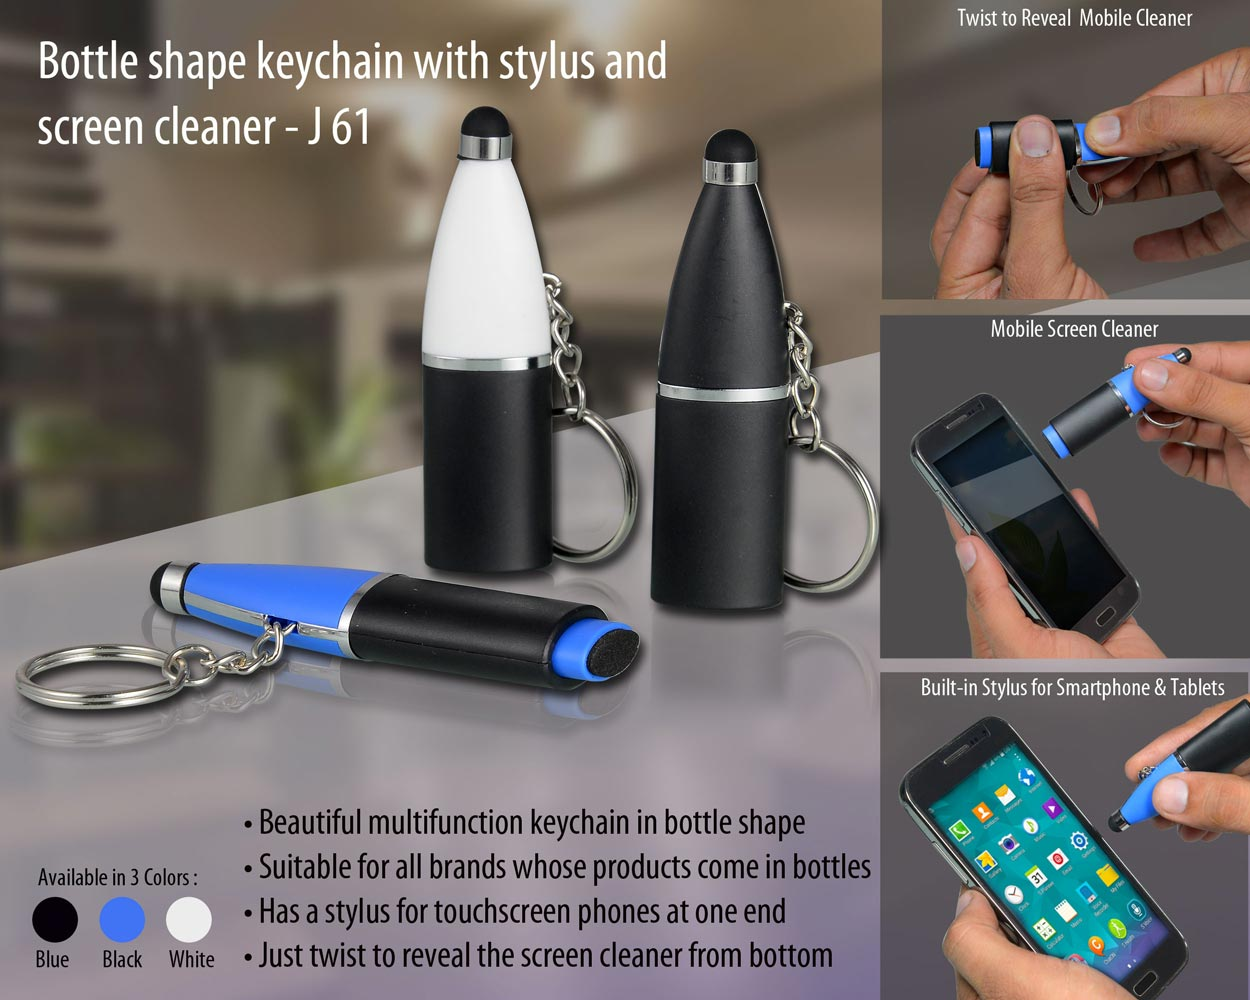 J61 - Bottle shape keychain with stylus and screen cleaner